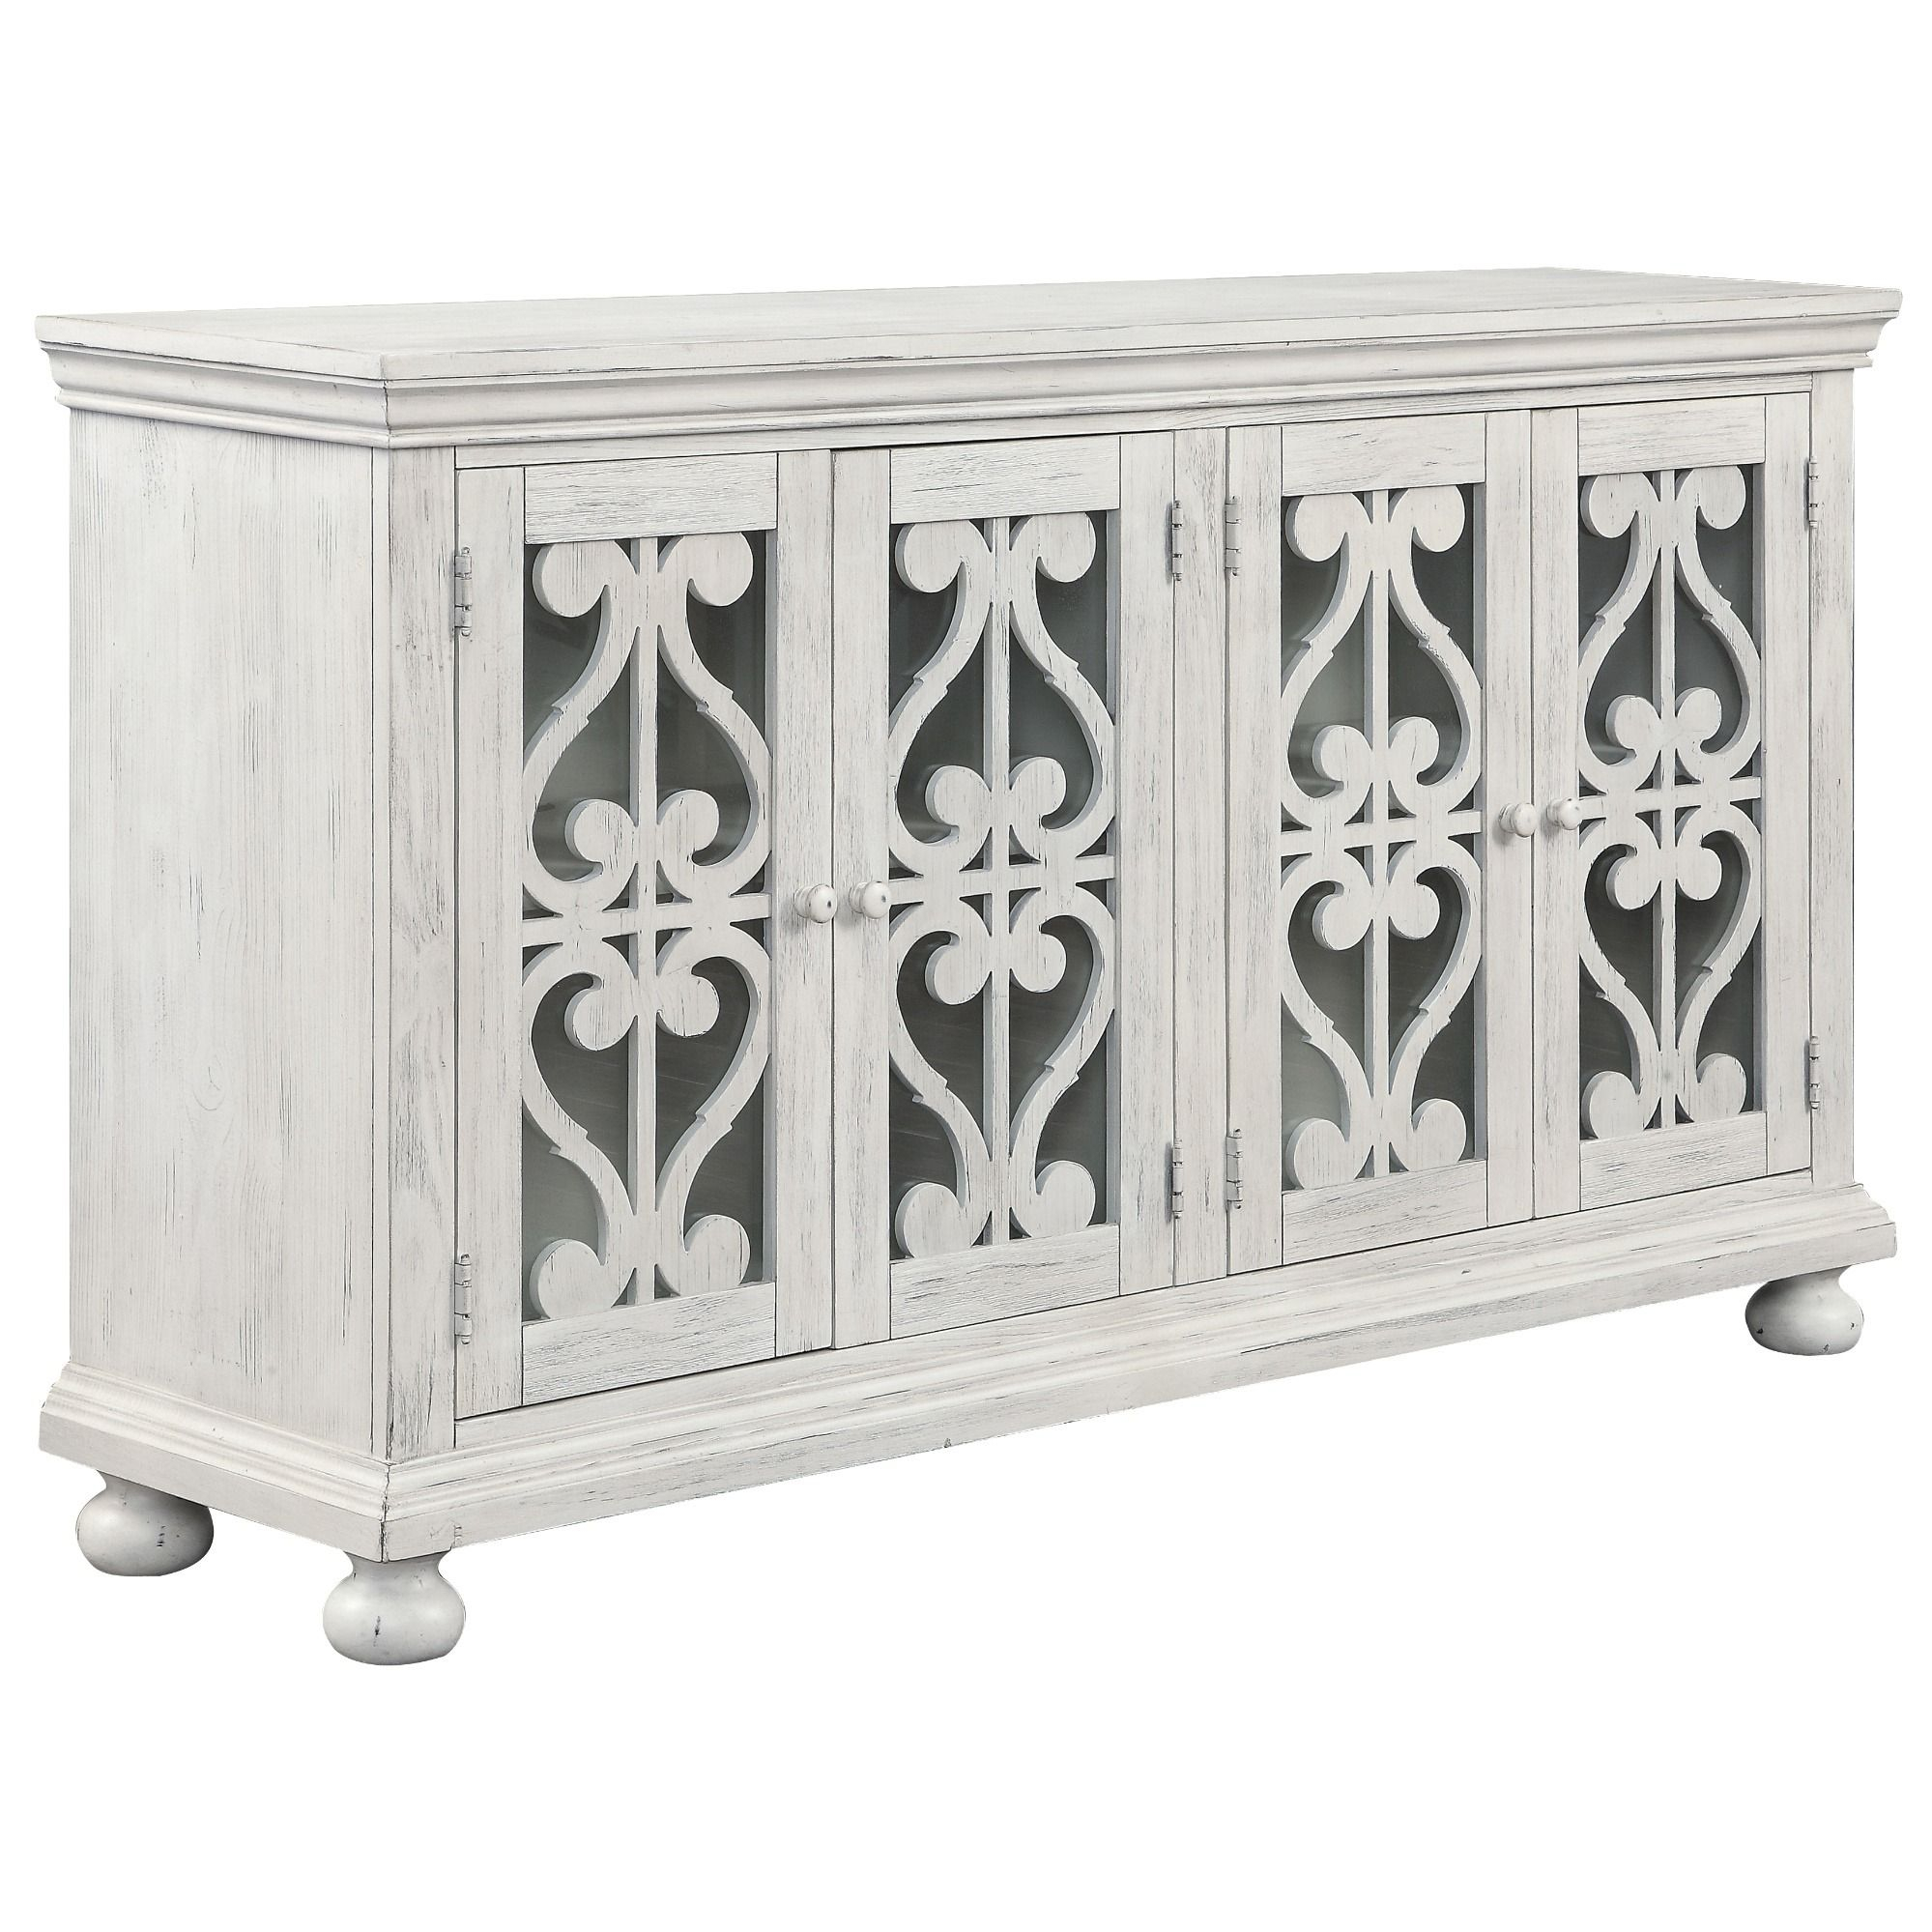 The Orchard House Dining Collection Features This Stunning Within Serafino Media Credenzas (View 30 of 30)